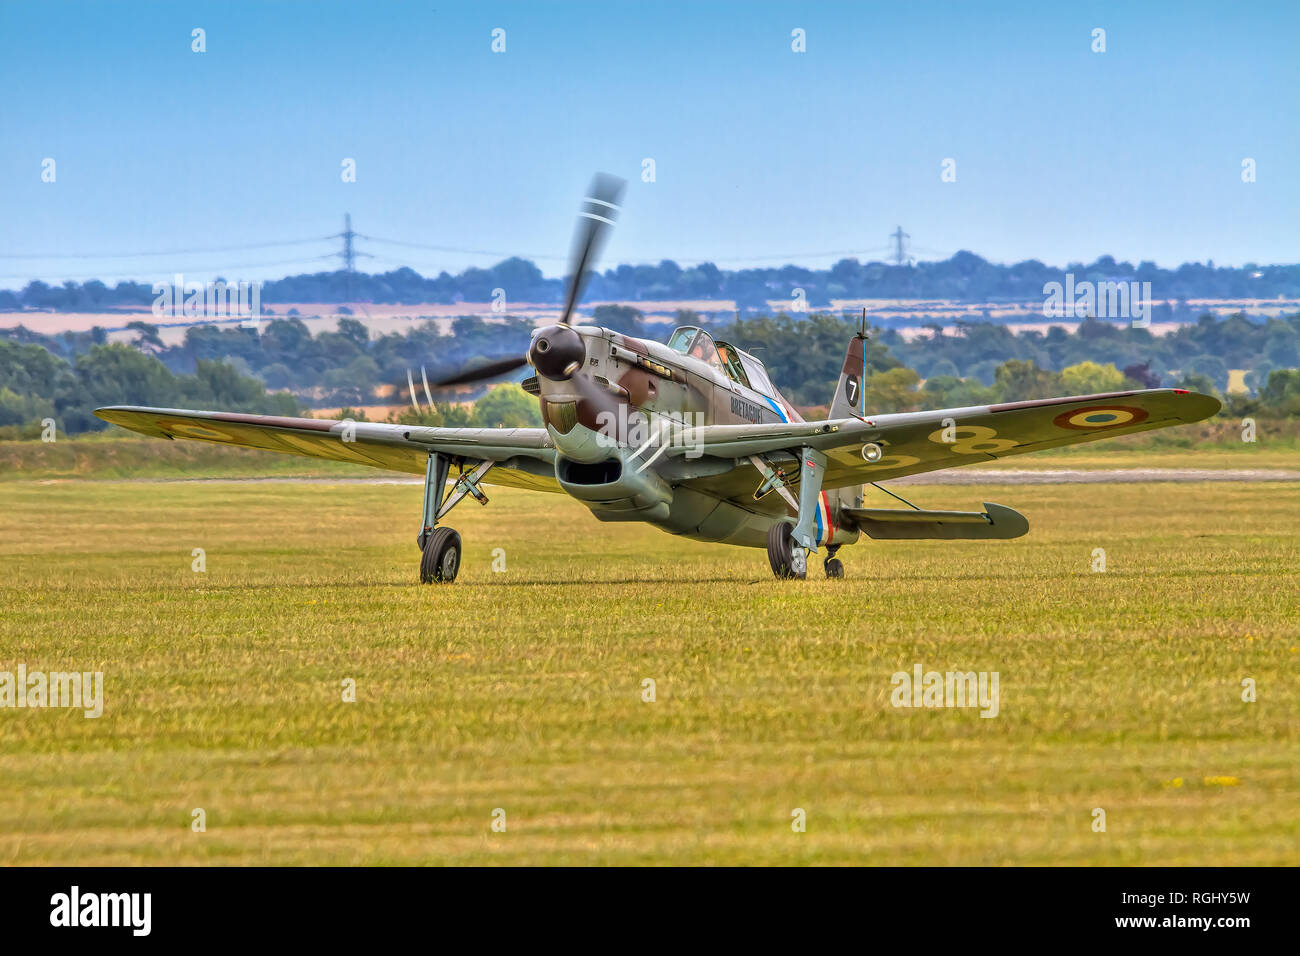 The AMCF's 1941 EFW/Dornier D-3801 HB-RCF taxying in across the grass at Duxford in 2011. It is painted as Morane Saunier MS.406C-1 No138 of the Frenc - Stock Image